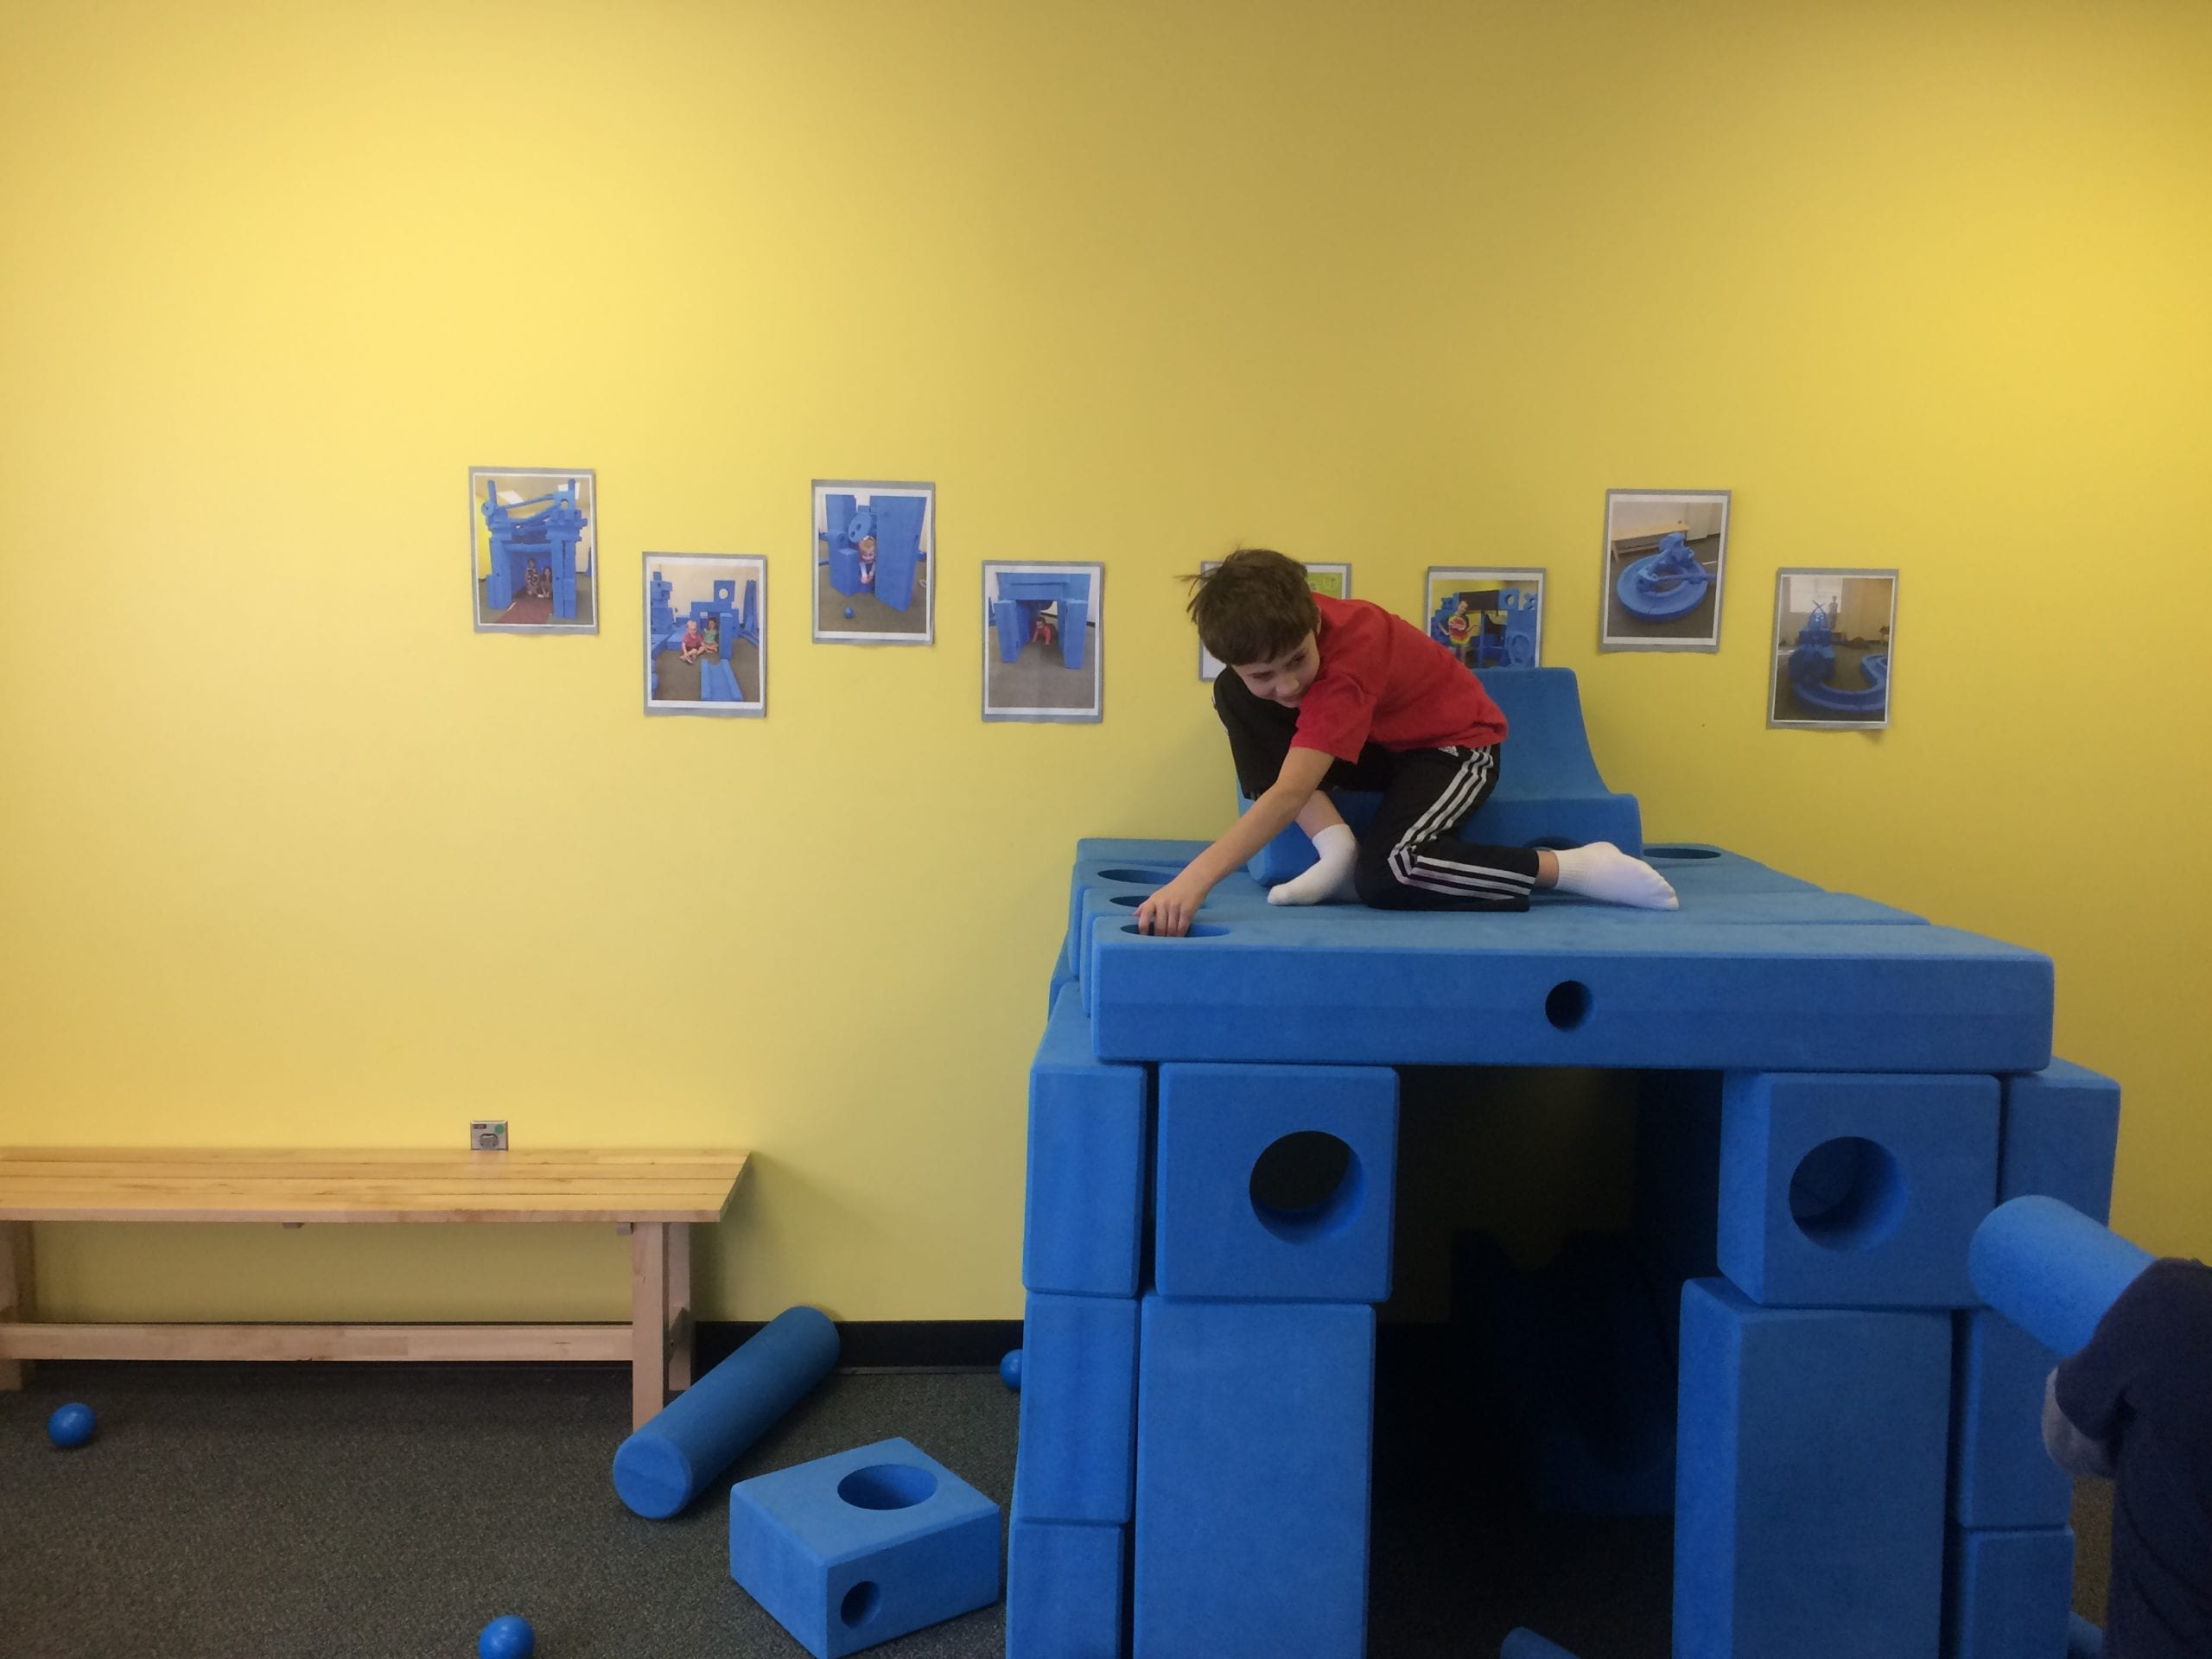 young boy climbing - the explosive child